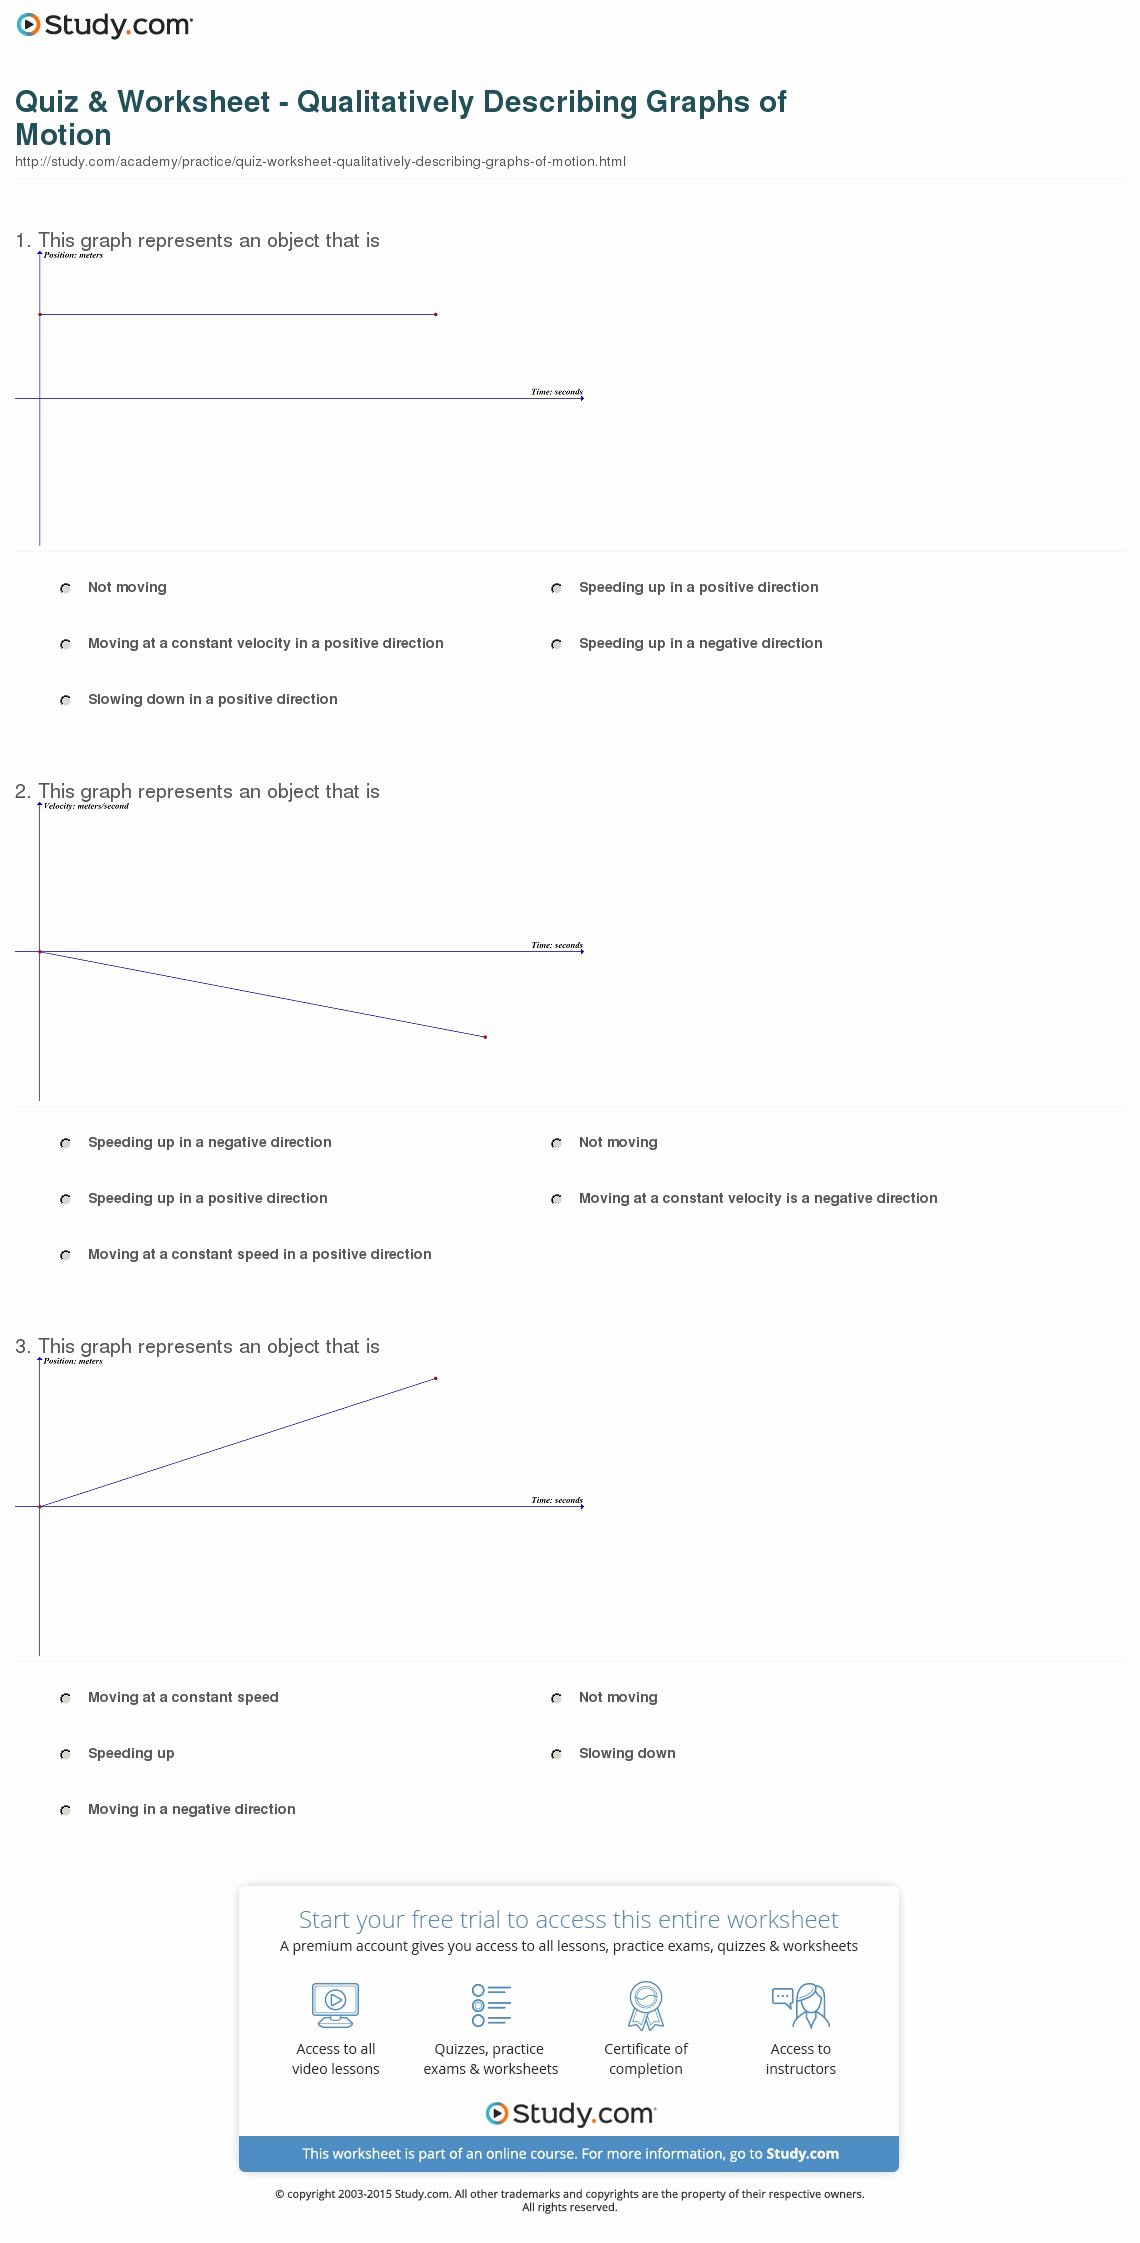 Motion Graph Analysis Worksheet Inspirational Quiz & Worksheet Qualitatively Describing Graphs Of